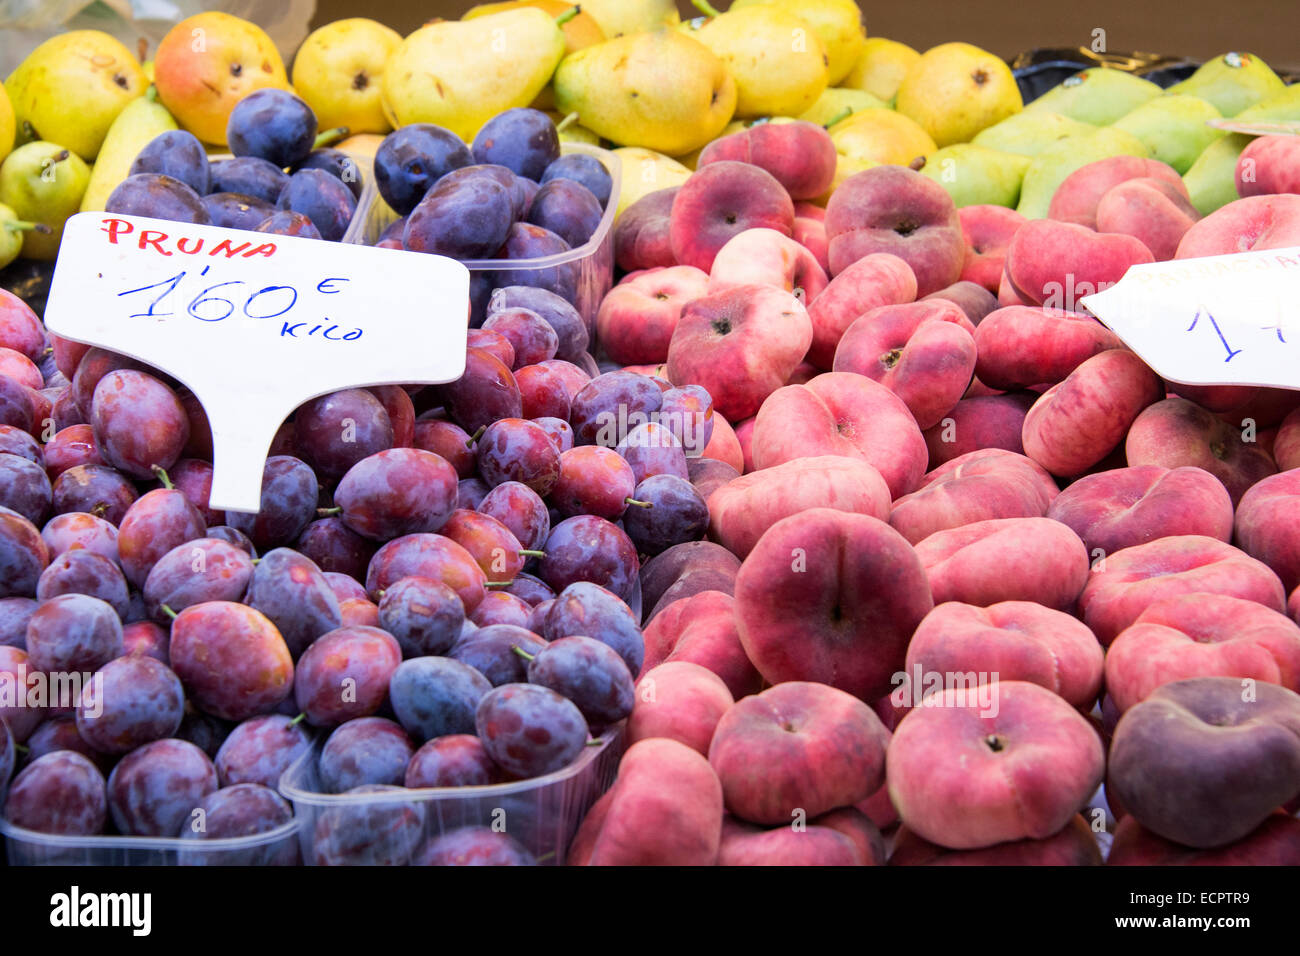 Fruit market with various colorful fresh fruits - Stock Image